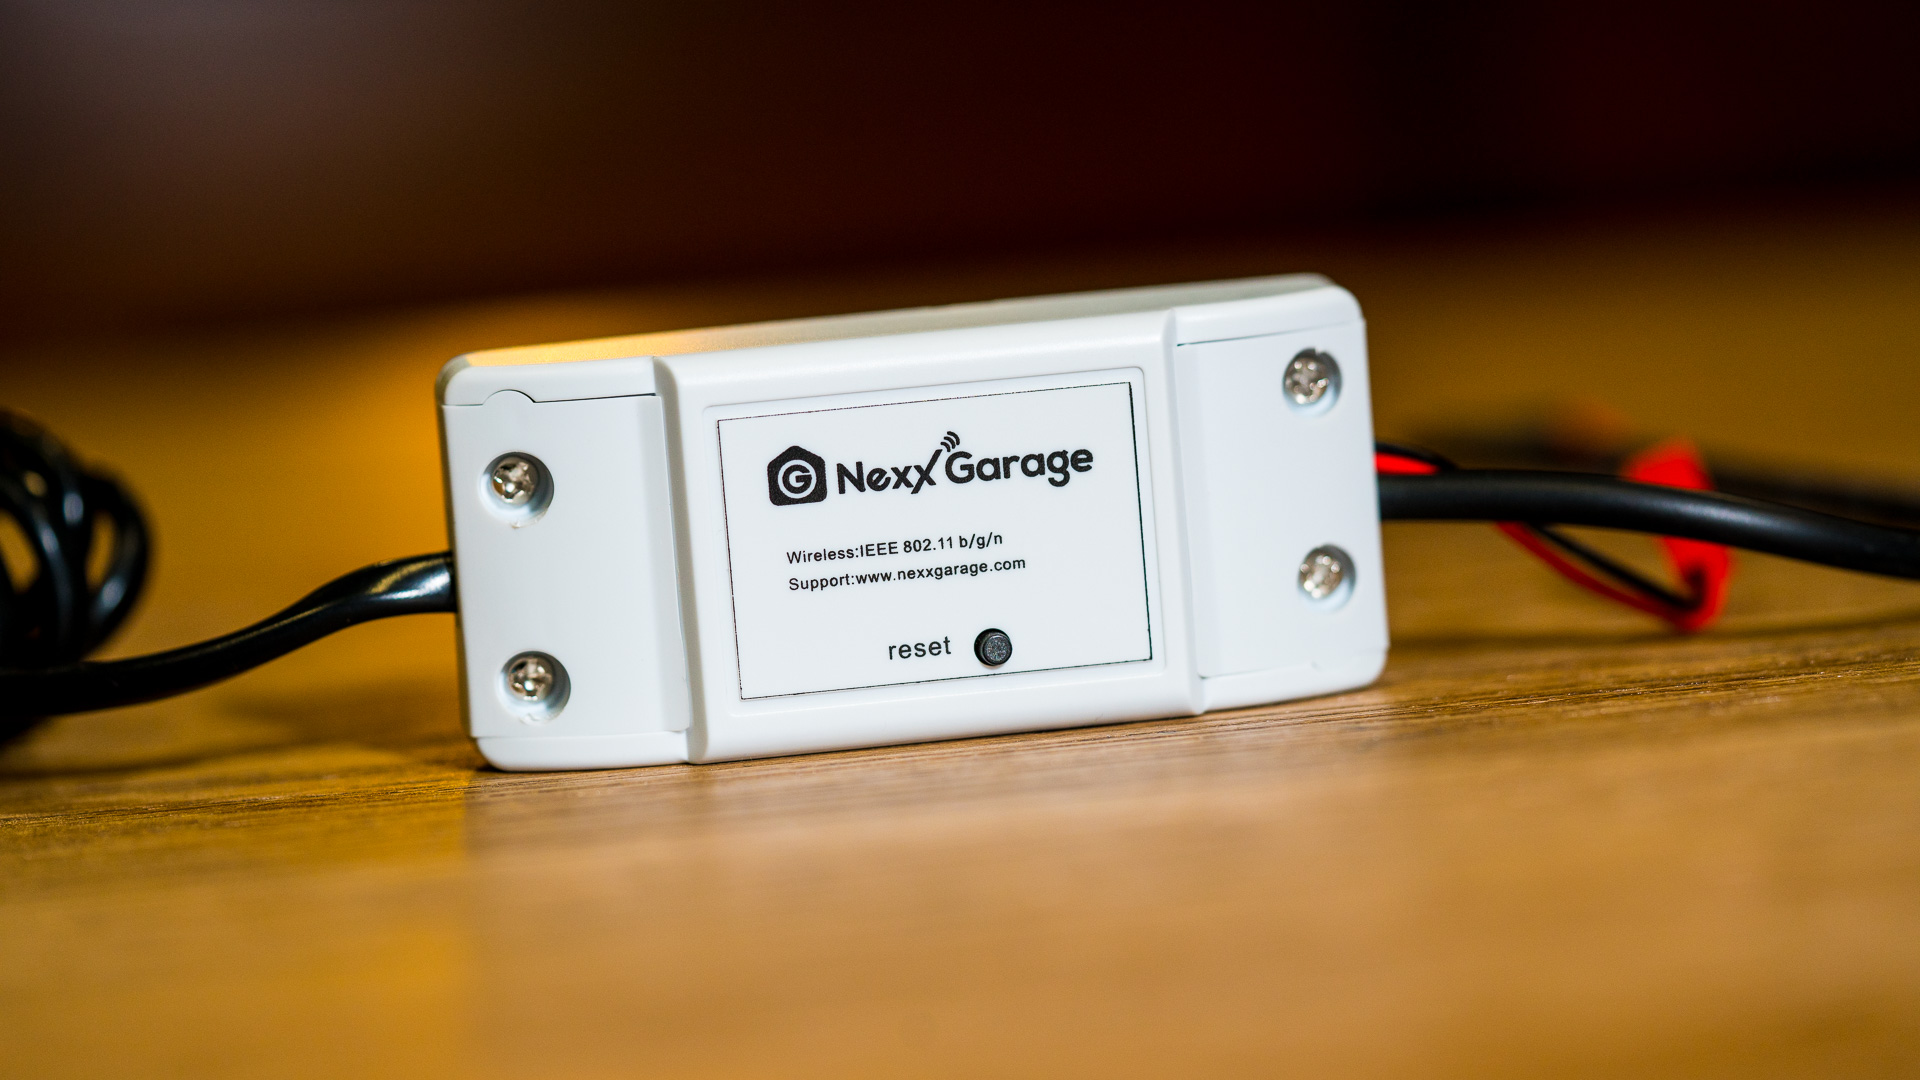 Nexx Garage gives any garage door the ability to be opened via smart phone, with added security and monitoring capabilities.